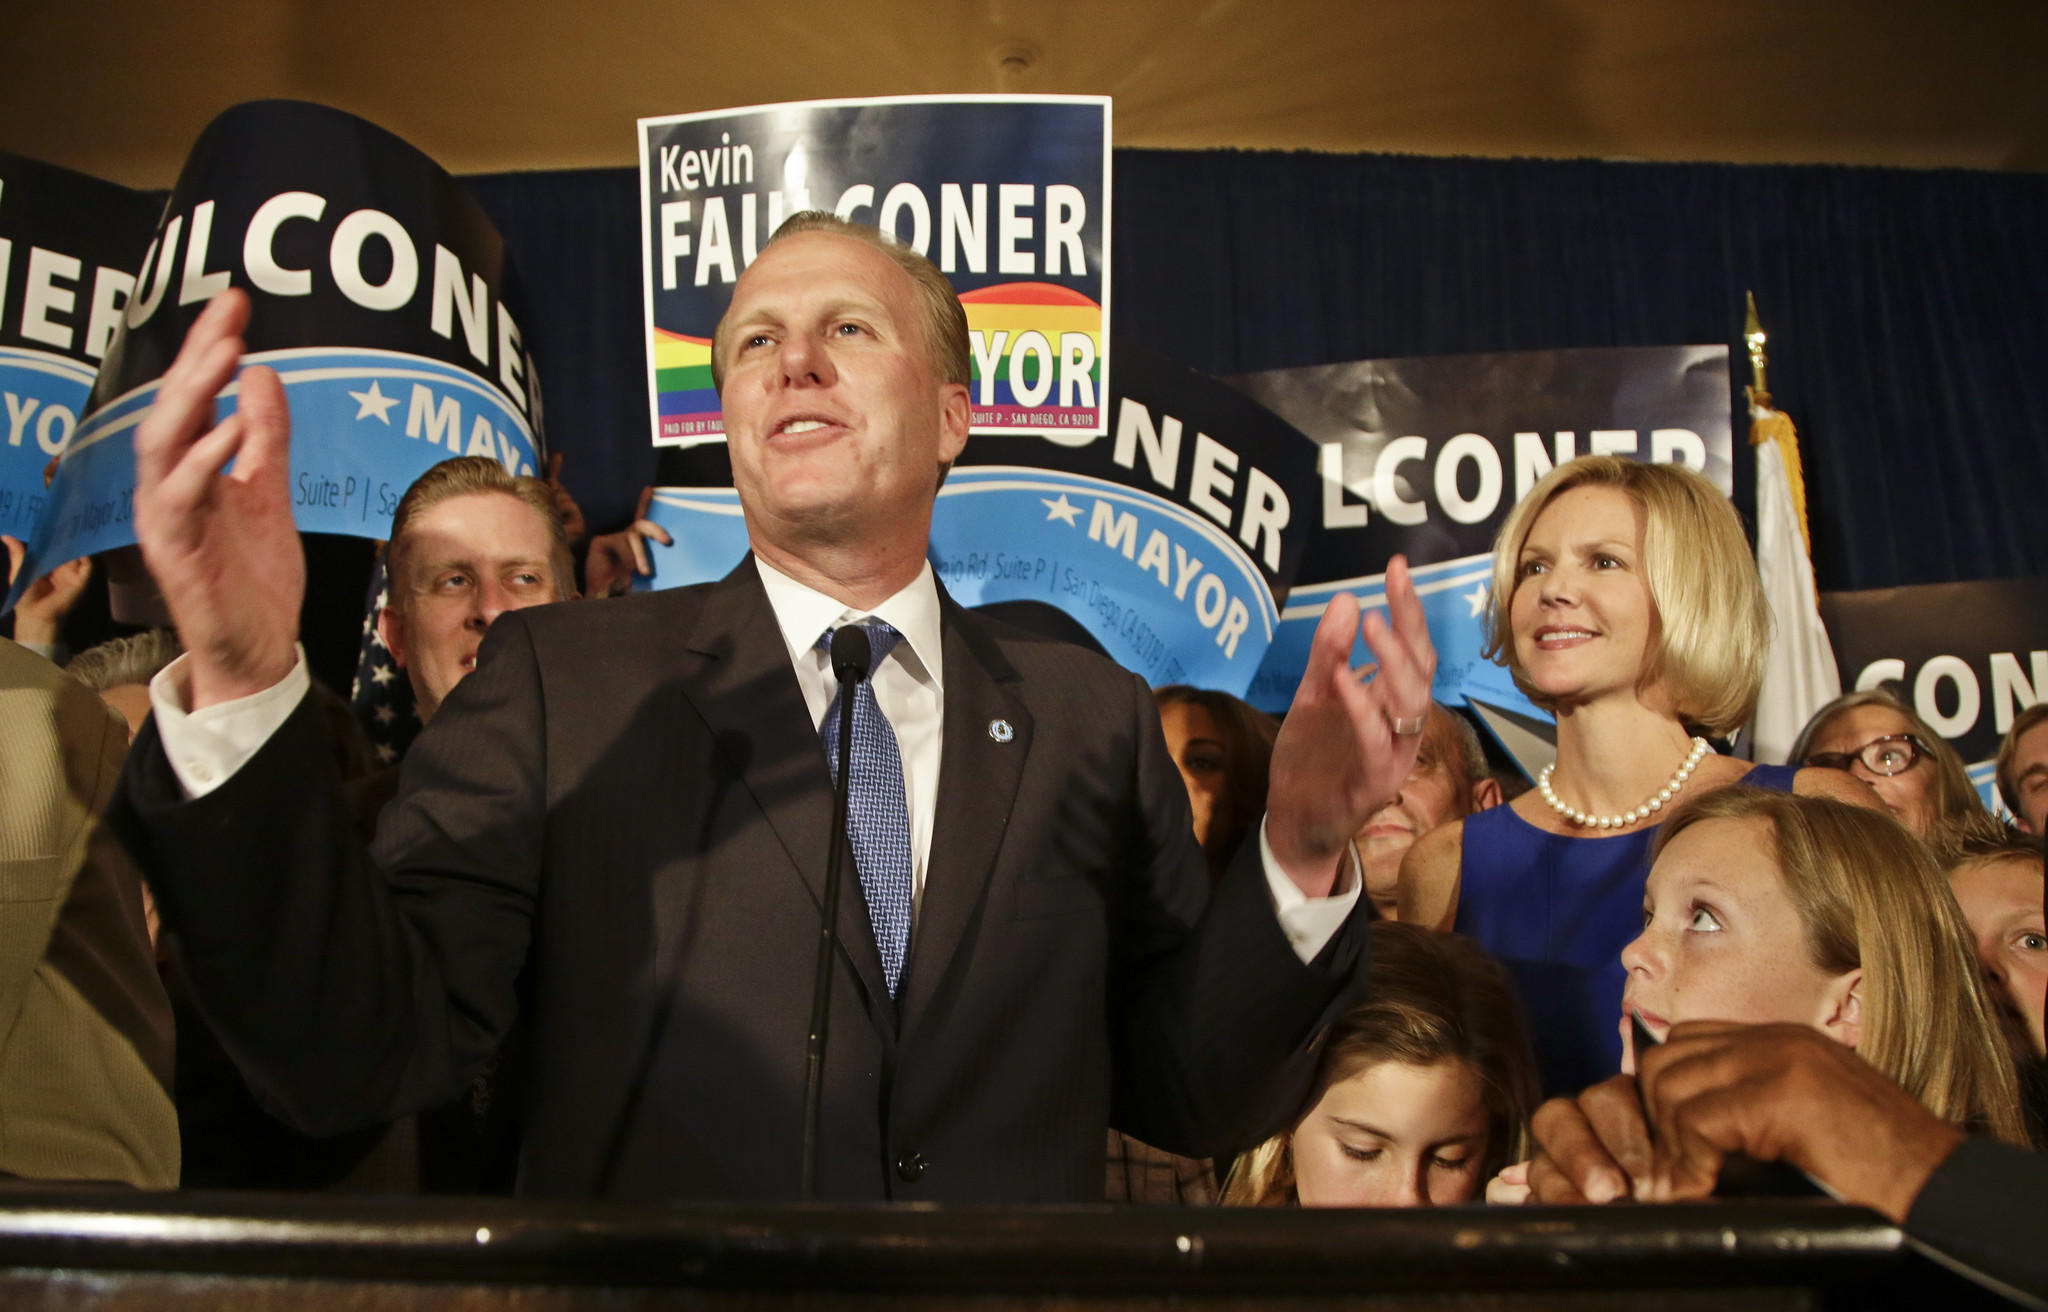 San Diego mayoral candidate Kevin Faulconer speaks to supporters just